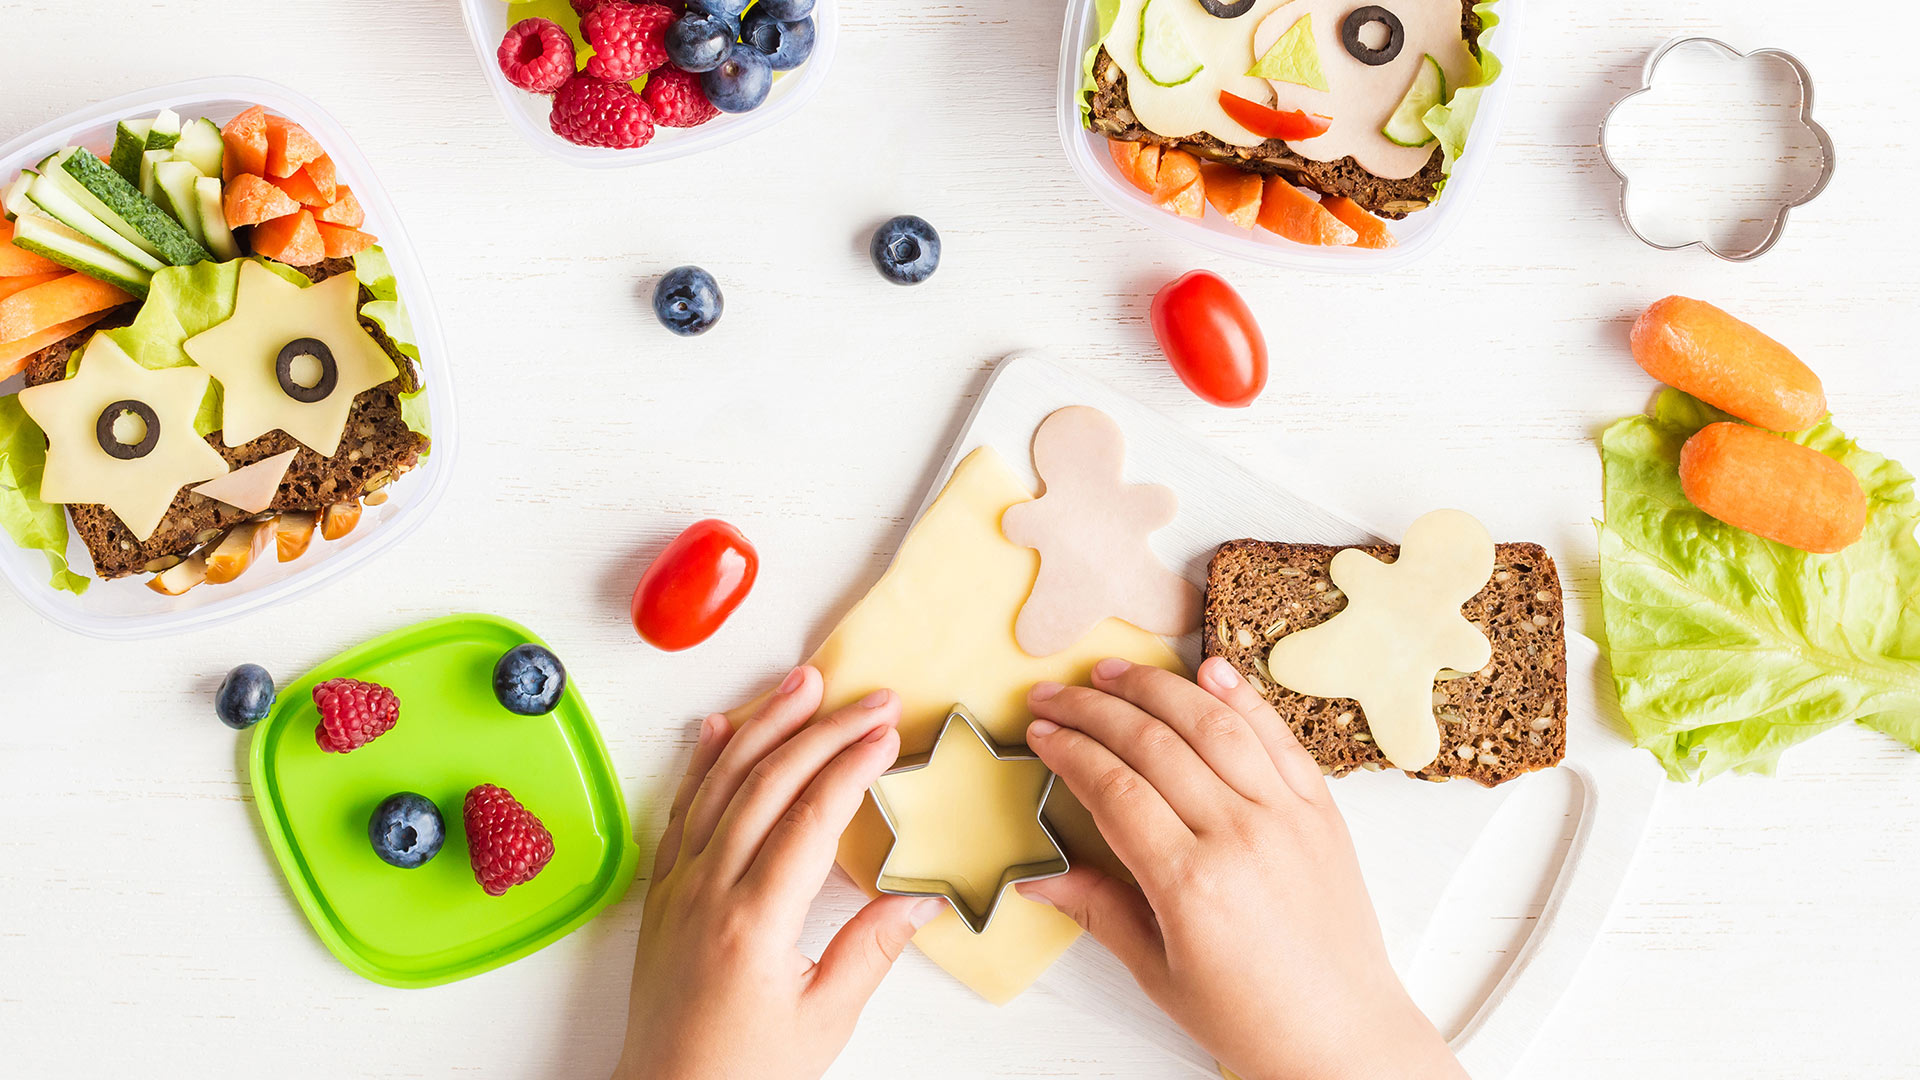 Fun2Raise Finds These Healthy-For-Kids Lunches!